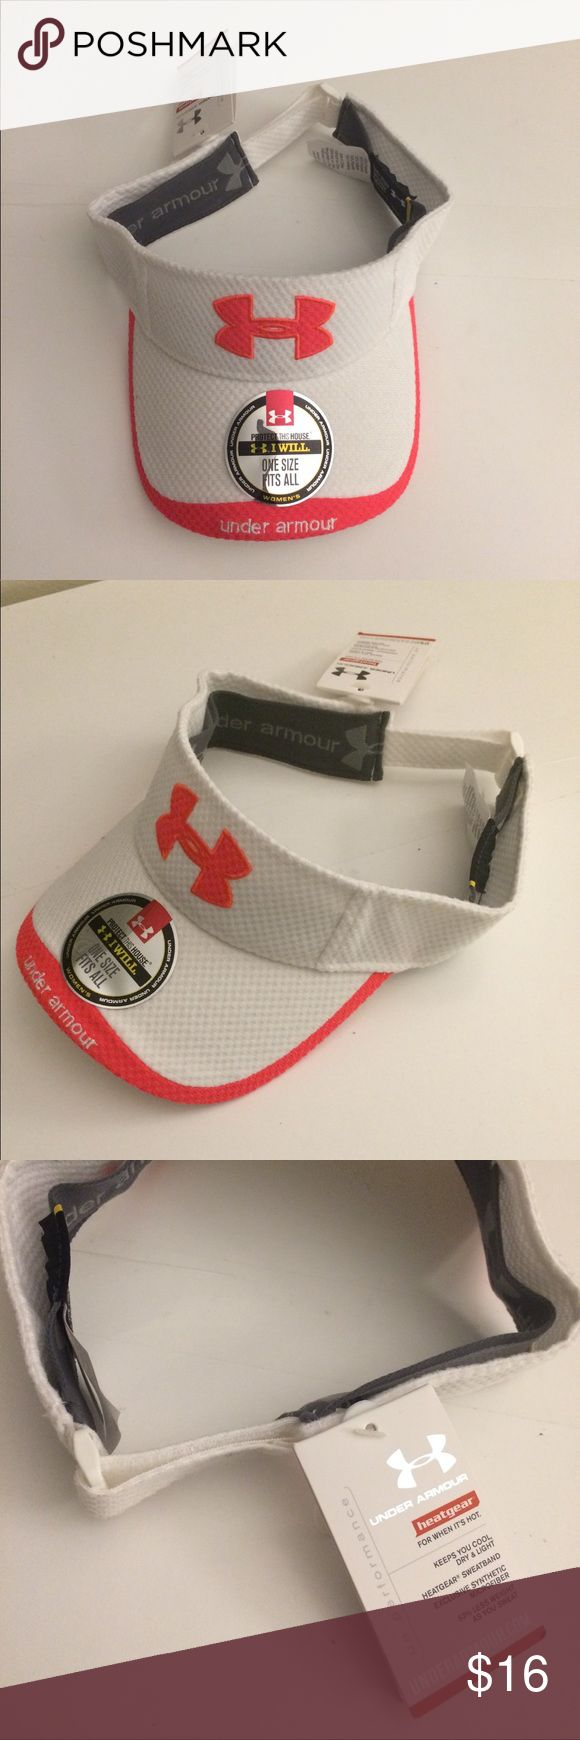 NWT Under Armour women's visor Brand new with tags Under Armour women's visor with adjustable strap. *Check out my closet for lots of other Under Armour items this can be bundled with! Under Armour Accessories Hats